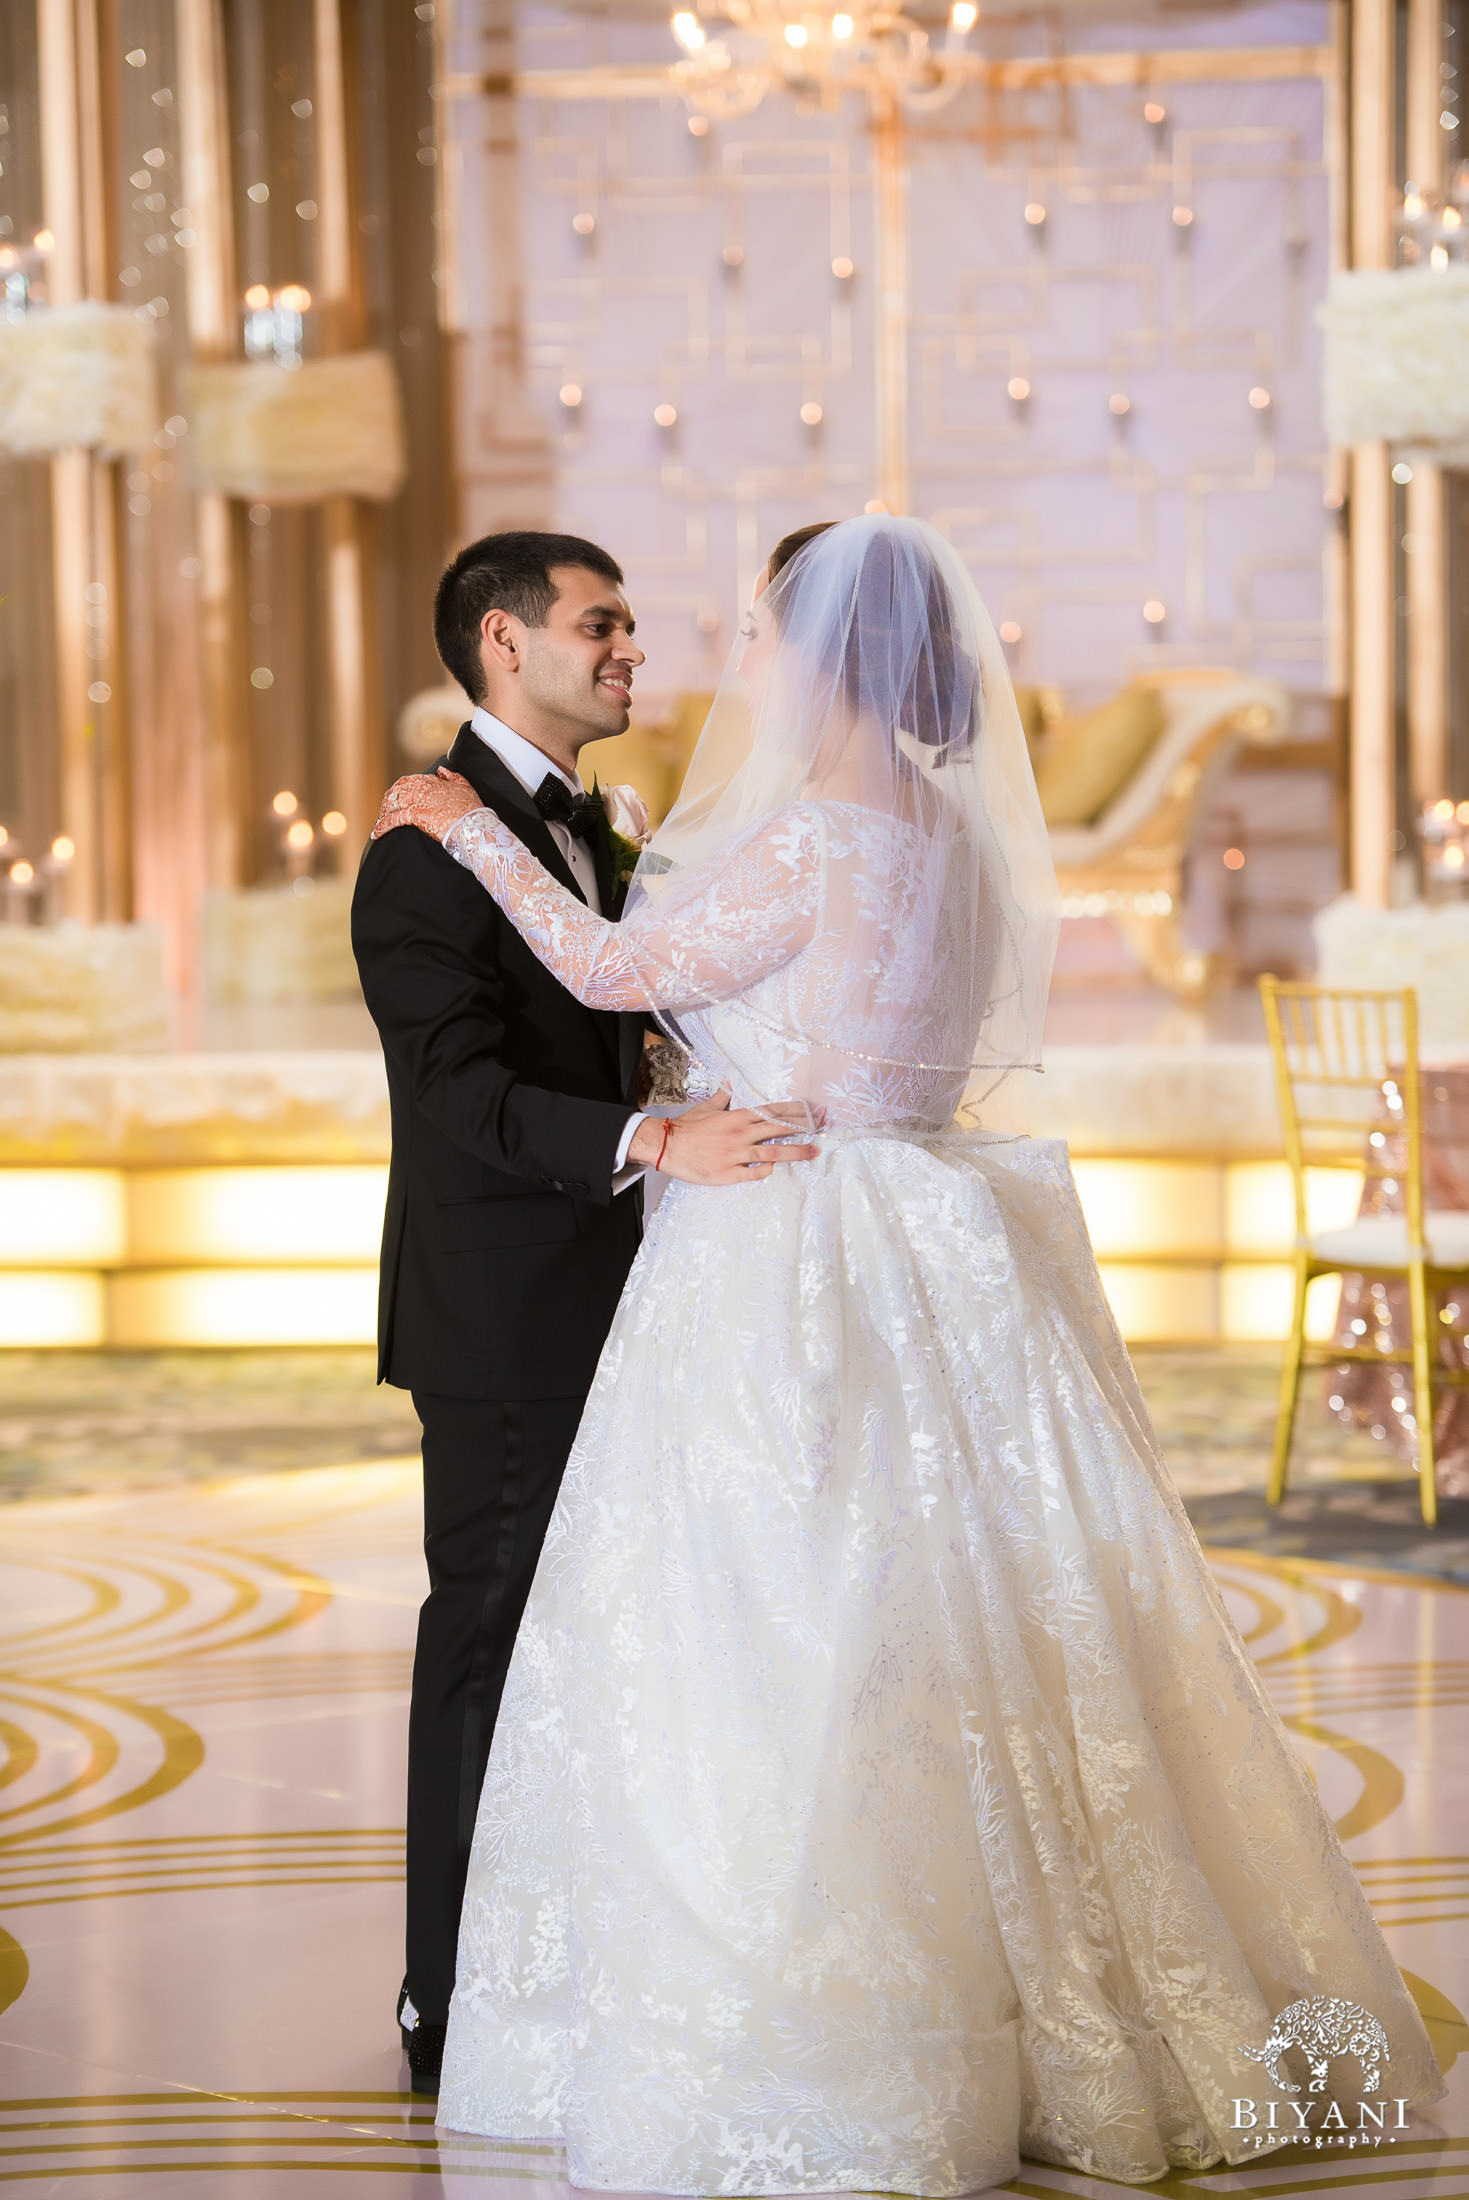 Bride and groom share their first dance at reception